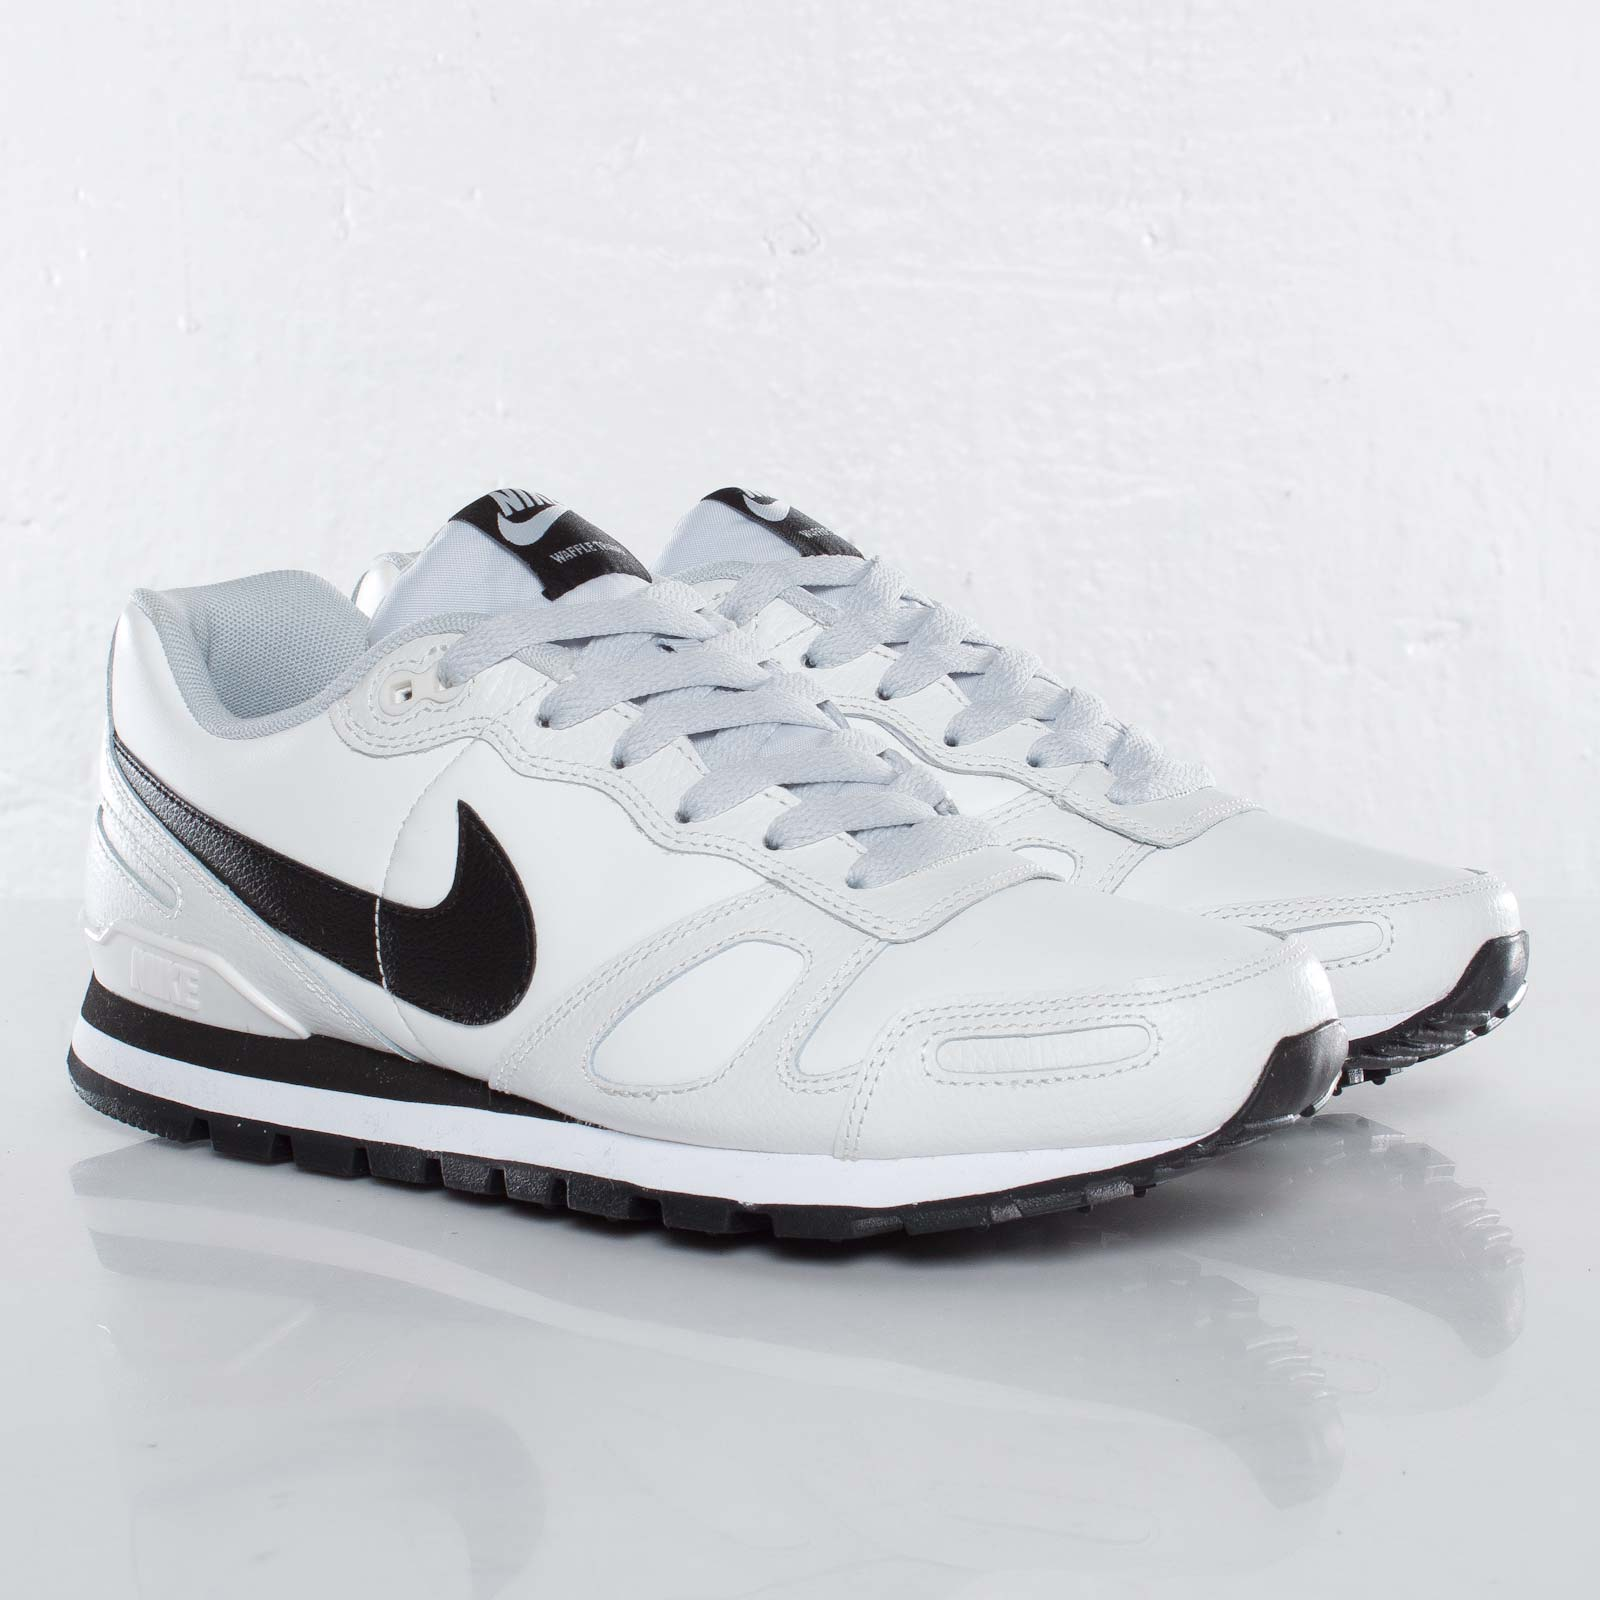 official photos fbd79 99ba5 Nike Air Waffle Trainer Leather - 454395-114 - Sneakersnstuff ...